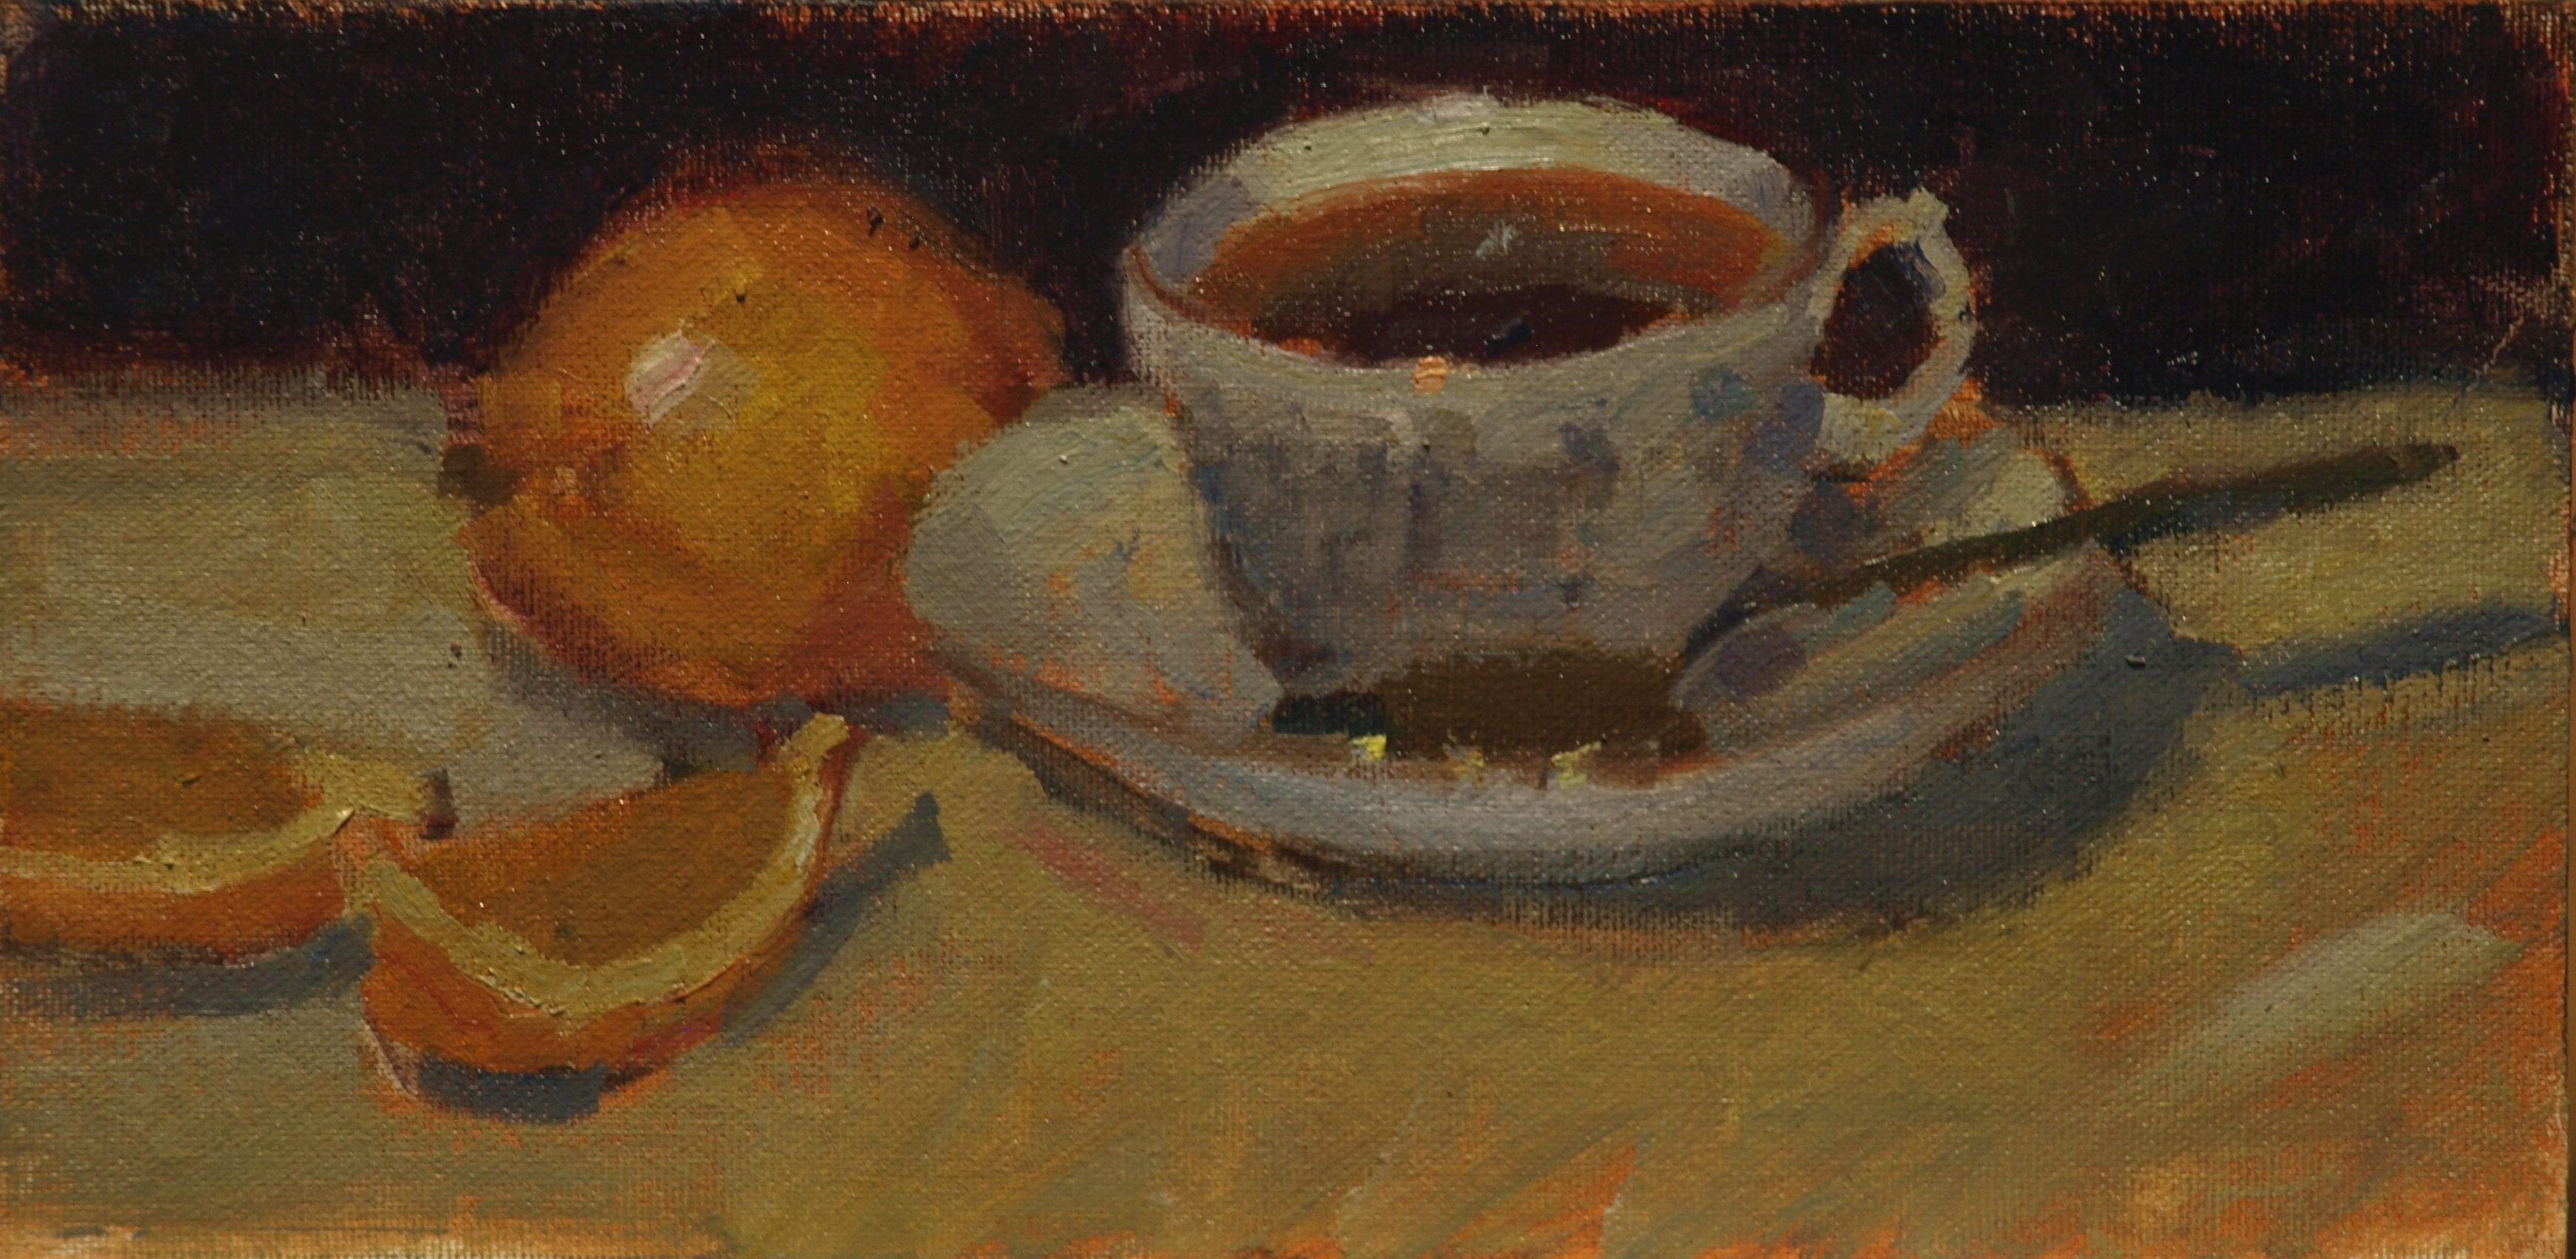 Tea with Lemon, Oil on Canvas on Panel, 6 x 12 Inches, by Susan Grisell, $150